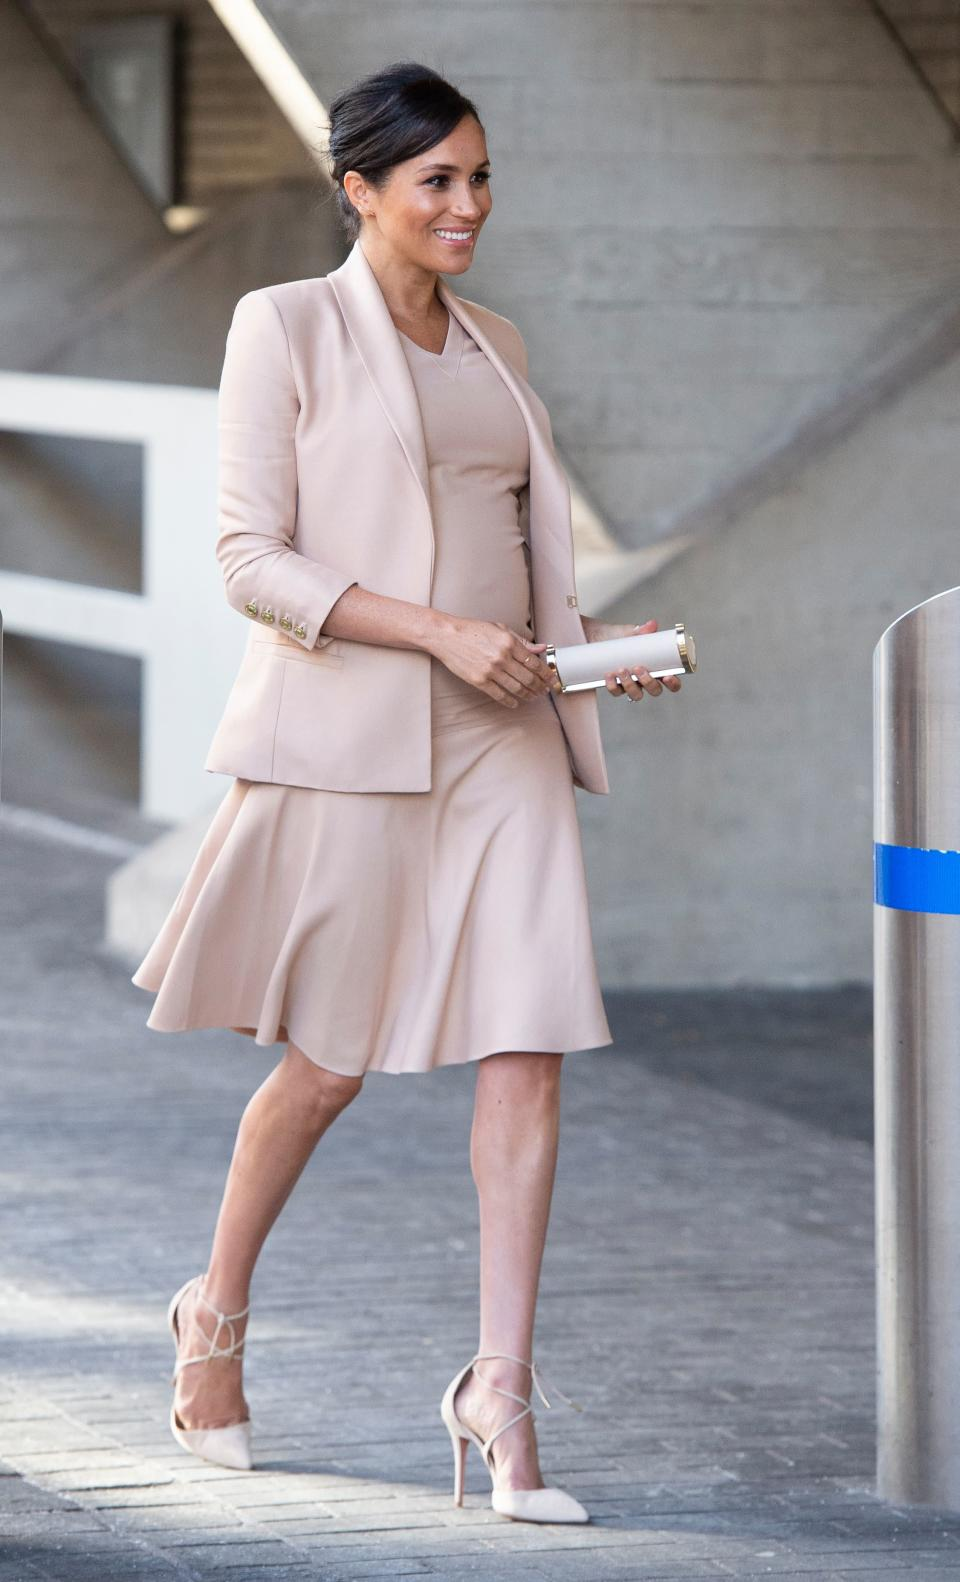 For a trip to the National Theatre in London, the Duchess of Sussex wore a dress and co-ordinating blazer by Brandon Maxwell. To accessorise the ensemble, the royal chose a Carolina Herrera clutch bag with lace-up Aquazurra heels – which she first wore on her engagement photo call. [Photo: Getty]